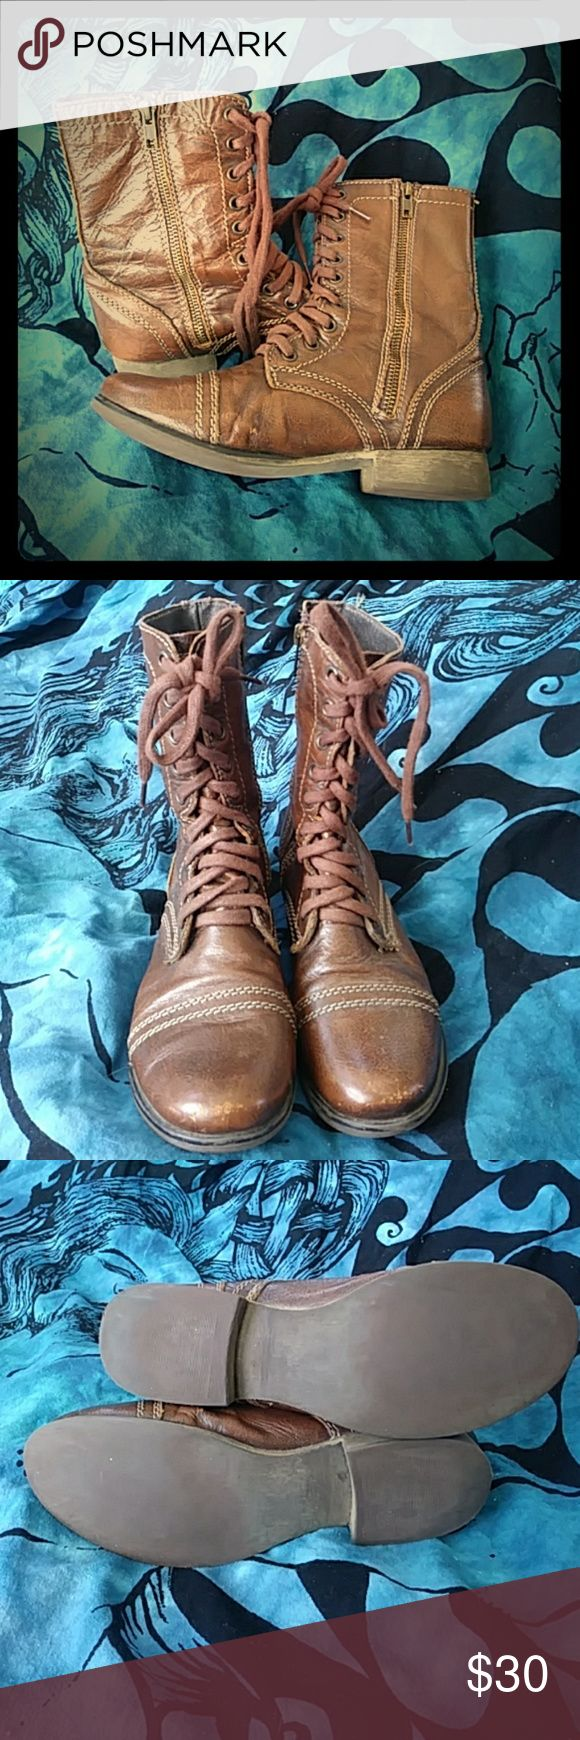 Cute combat boots Adorable Steve Madden combats boots in great shape! Steve Madden Shoes Combat & Moto Boots